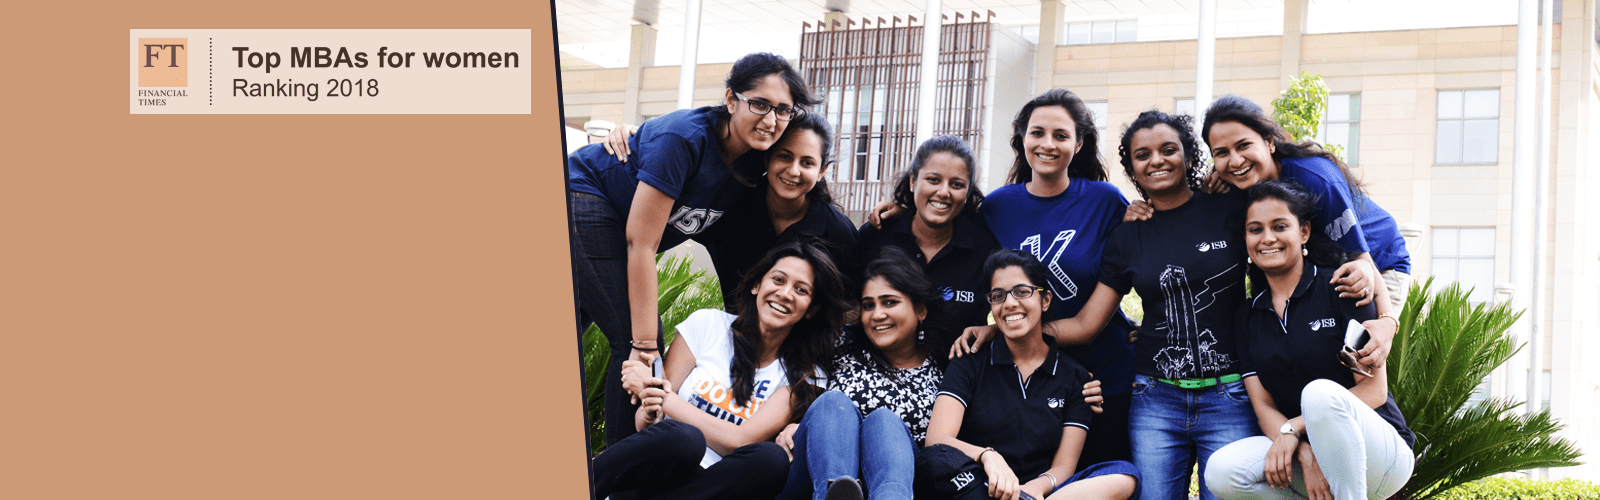 ISB ranks #26 in the Financial Times Top 50 MBAs for Women Ranking 2018